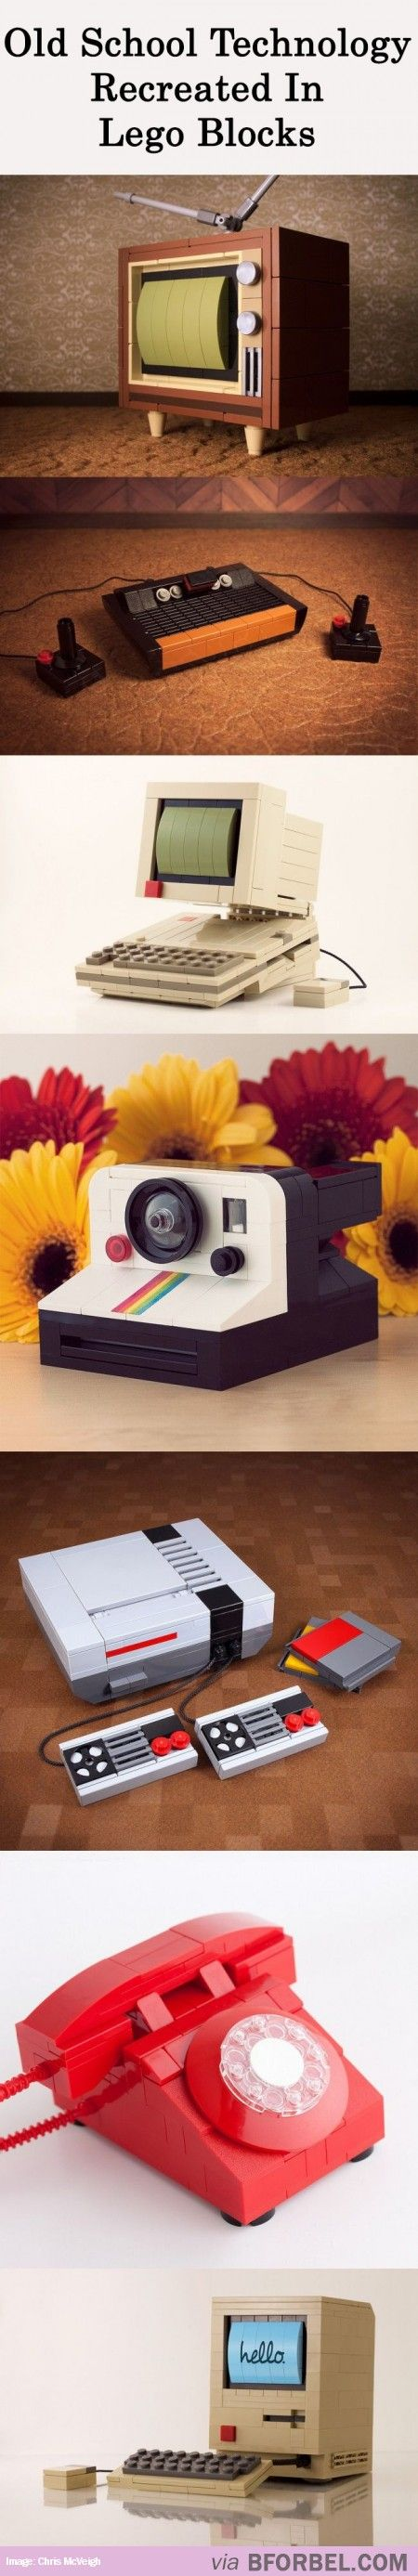 7 Old School Technology Recreated With Lego…